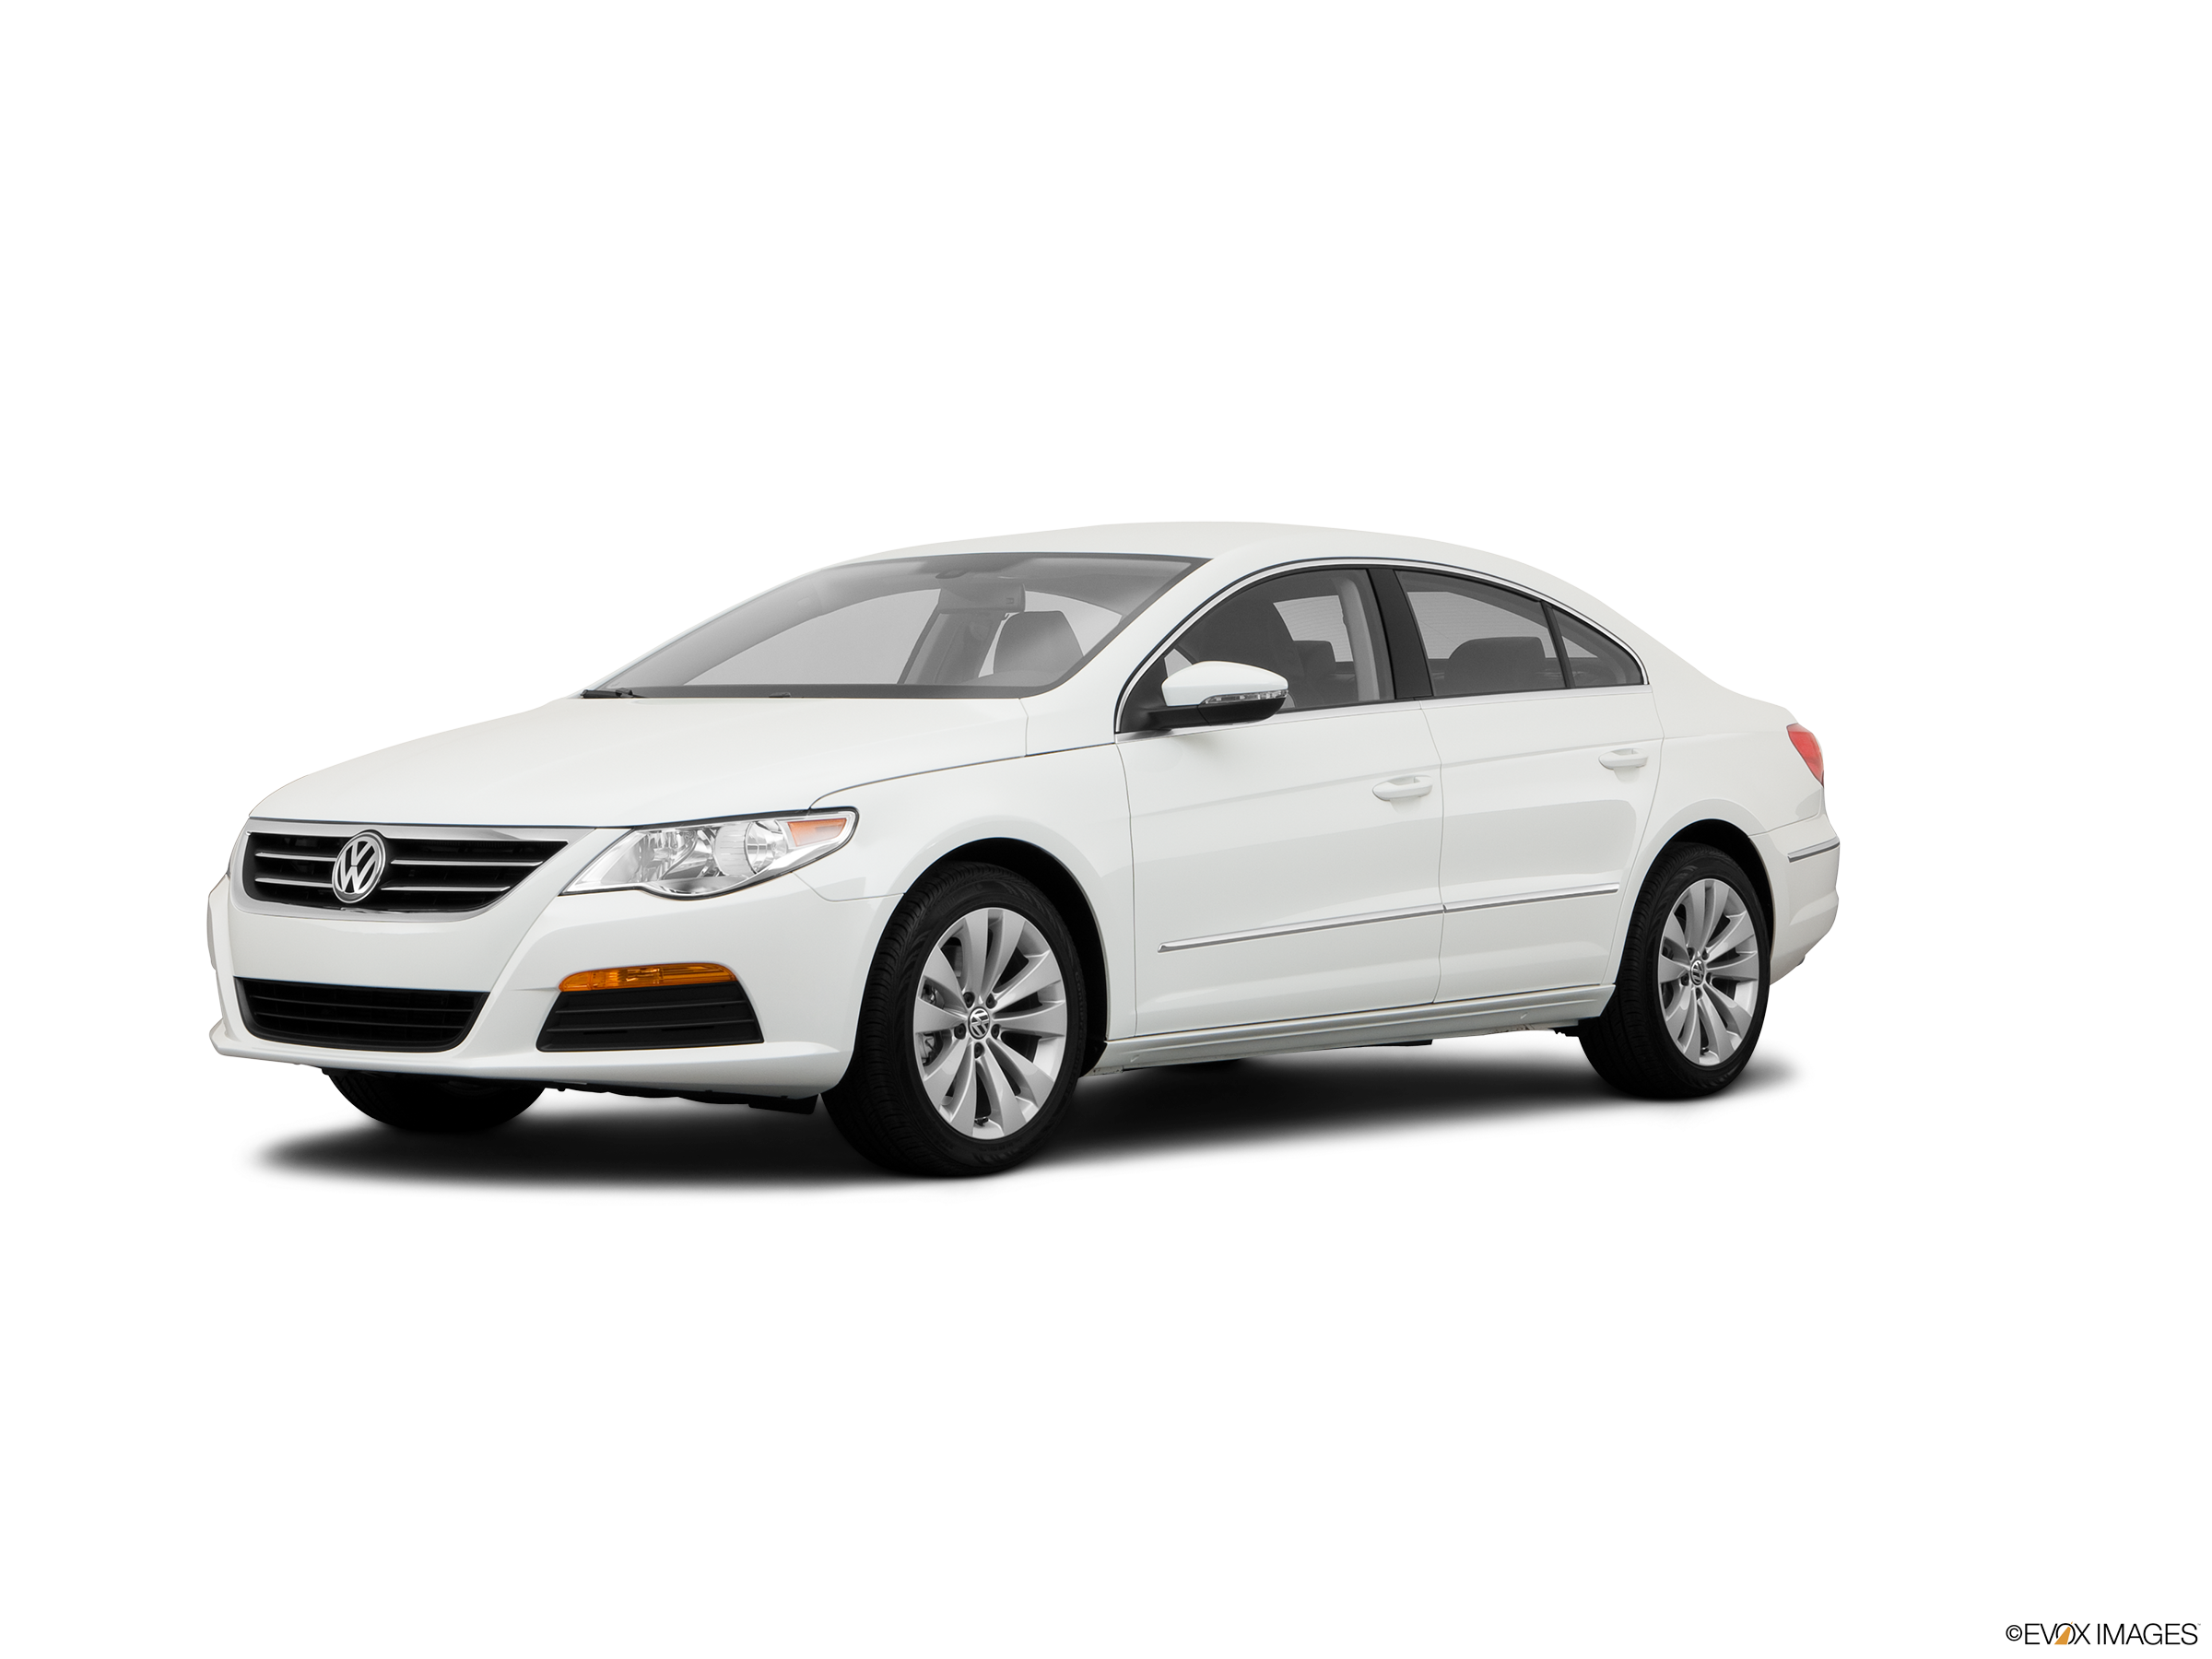 2011 Volkswagen Cc Values Cars For Sale Kelley Blue Book